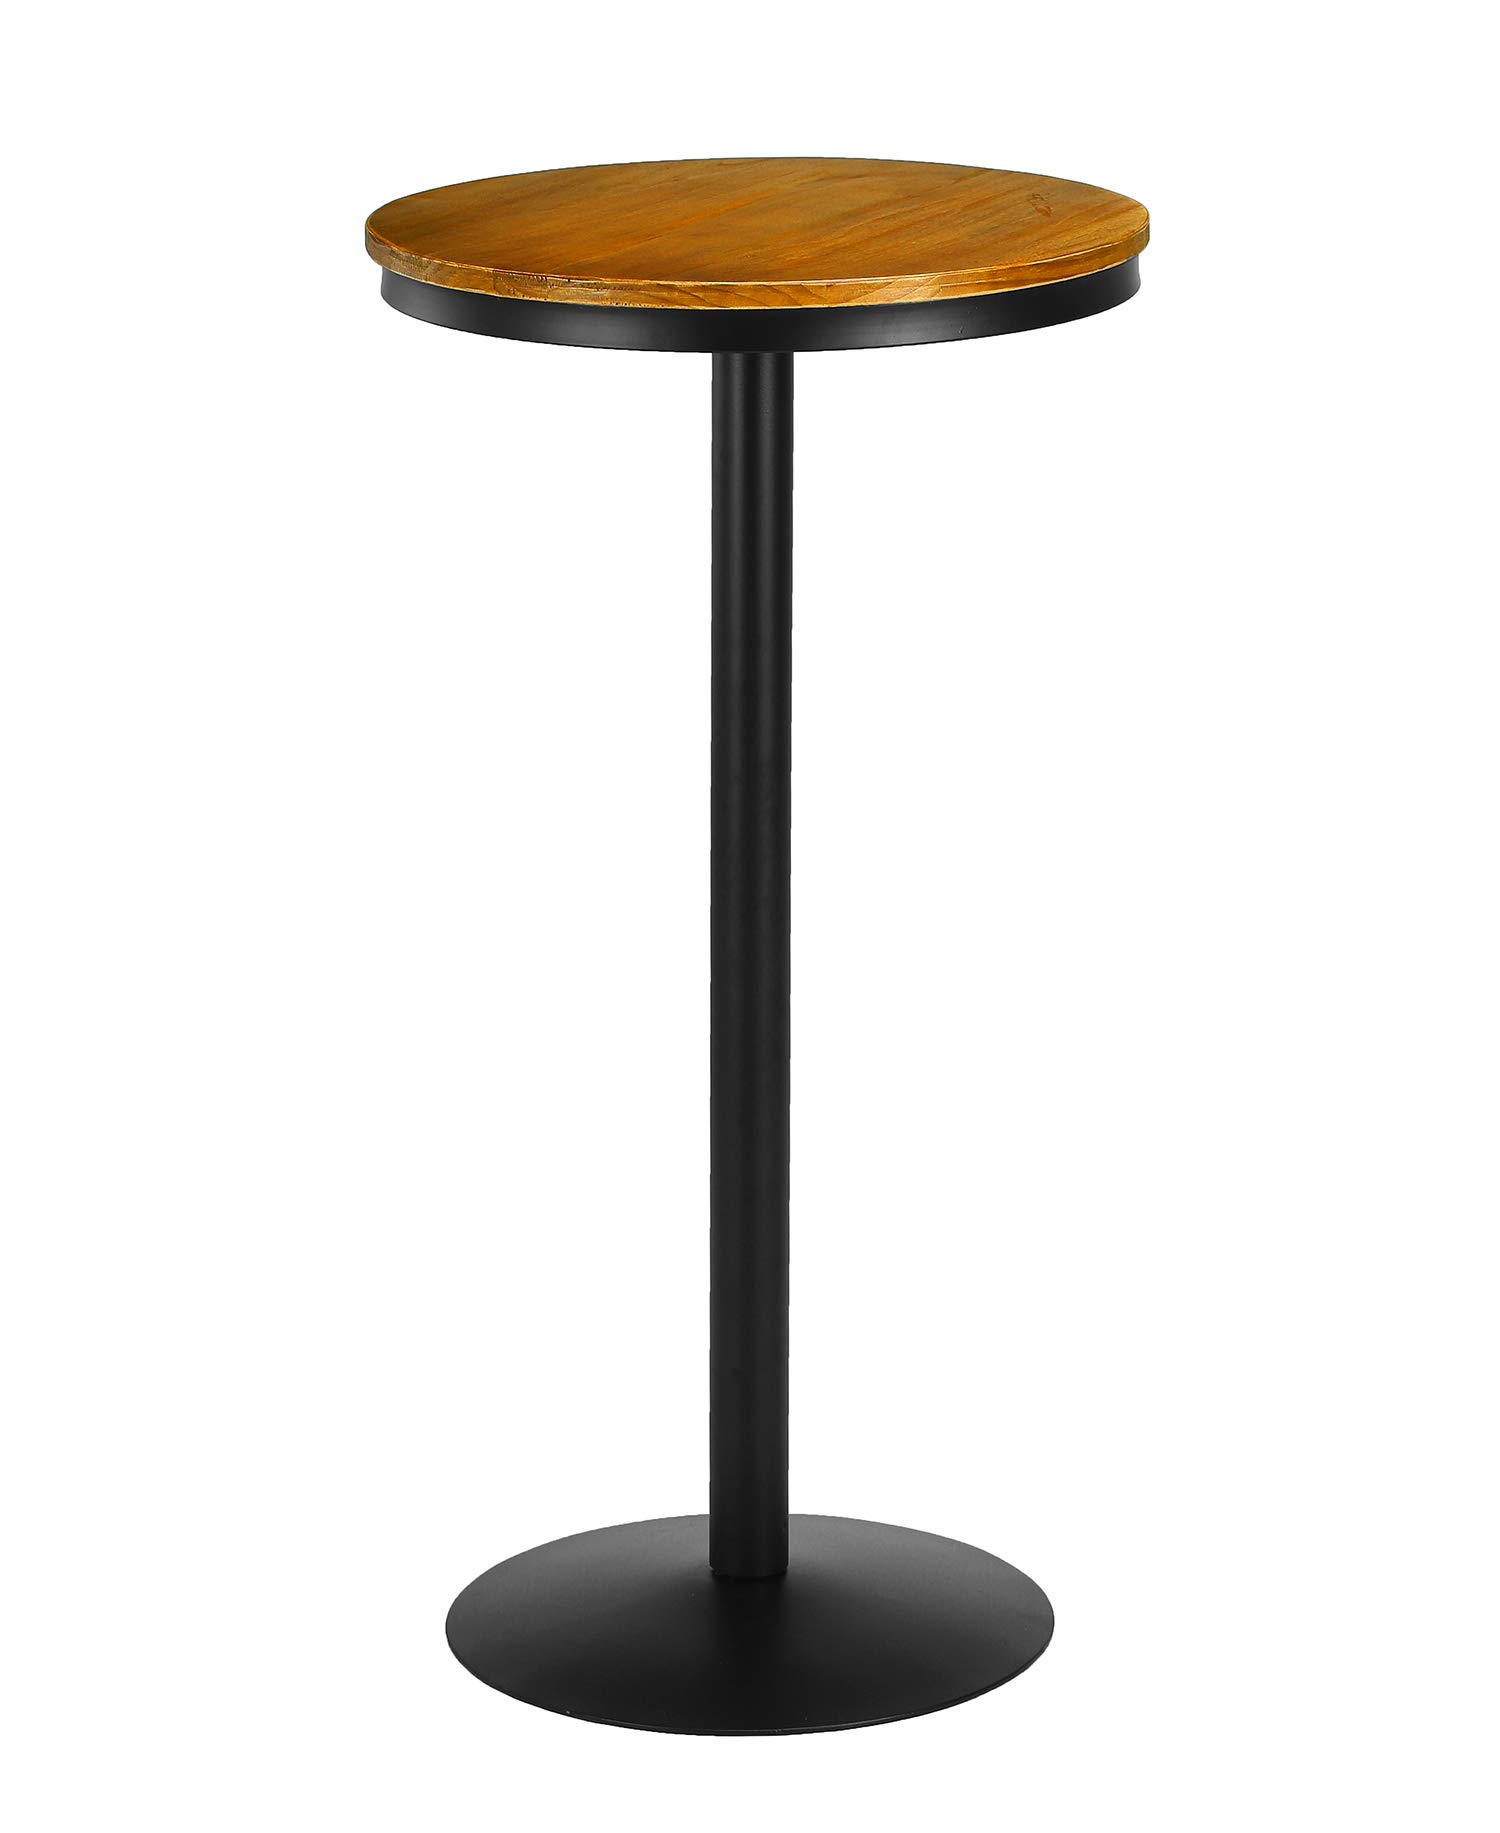 VILAVITA Wood Pub Table Round Bar Table Wood Top with Metal Leg and Base, 21.65'' Top and 41.34'' Height, Retro Finish